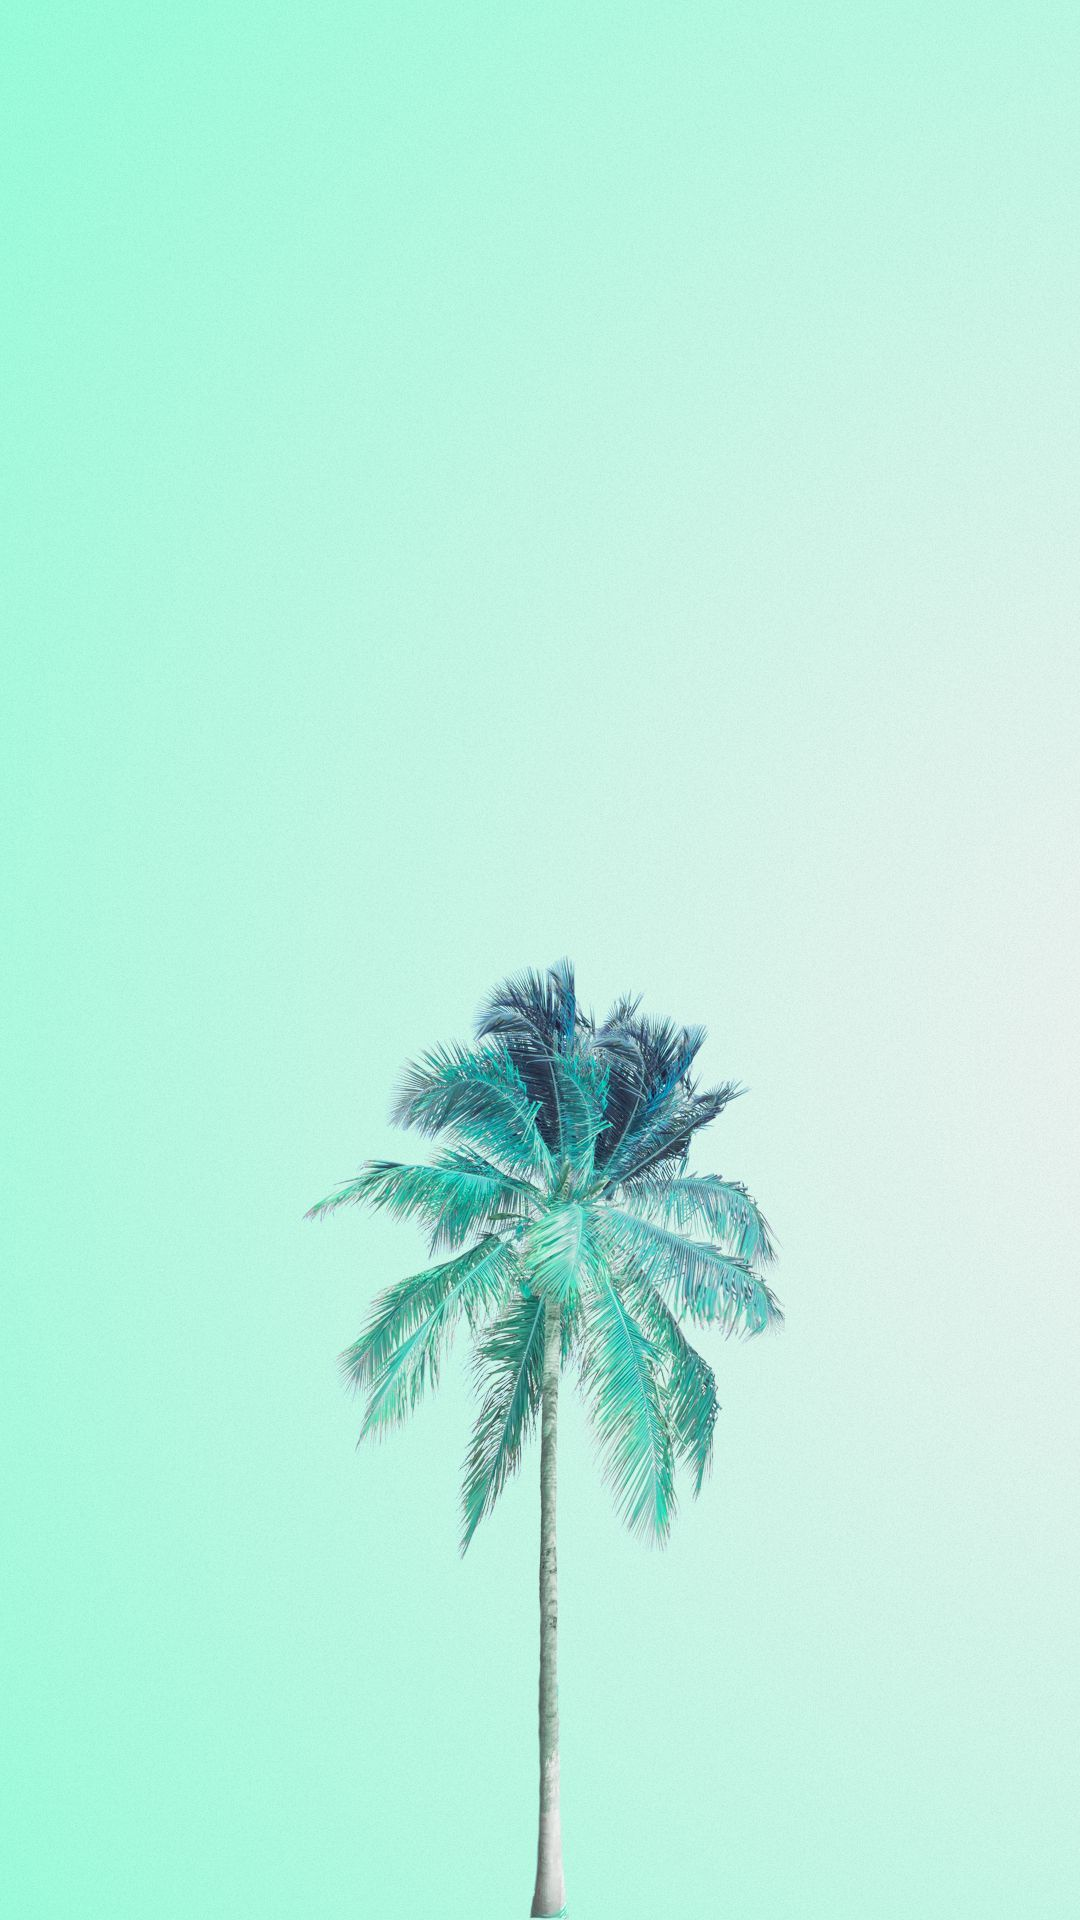 Tumblr Pastel Green Wallpaper Hd